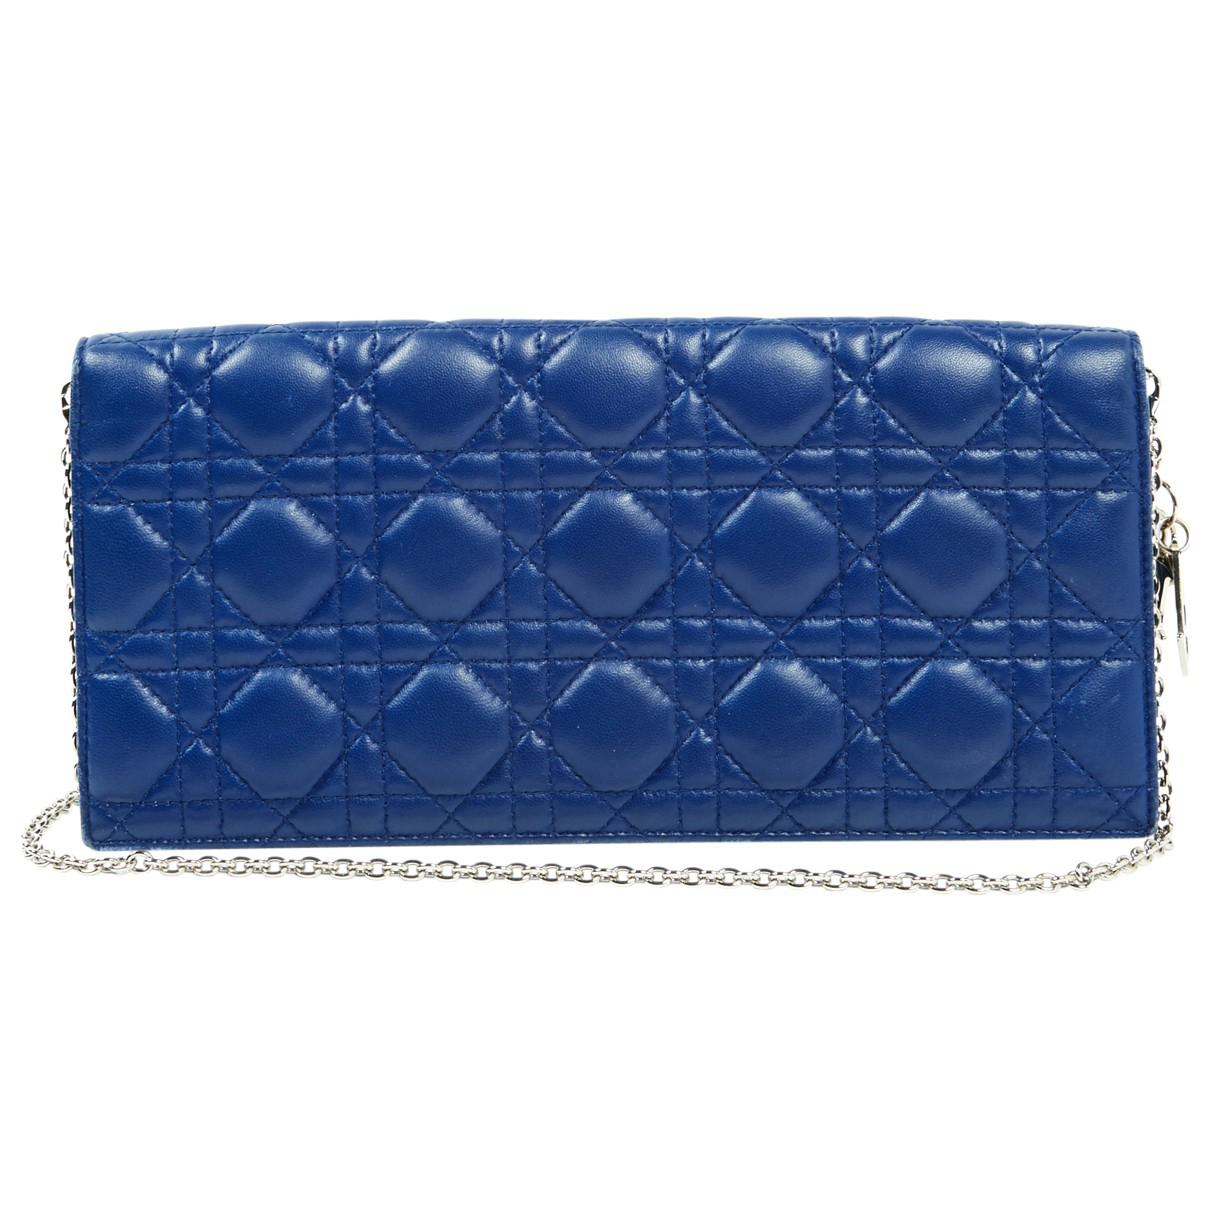 Dior Pre-owned - Leather clutch